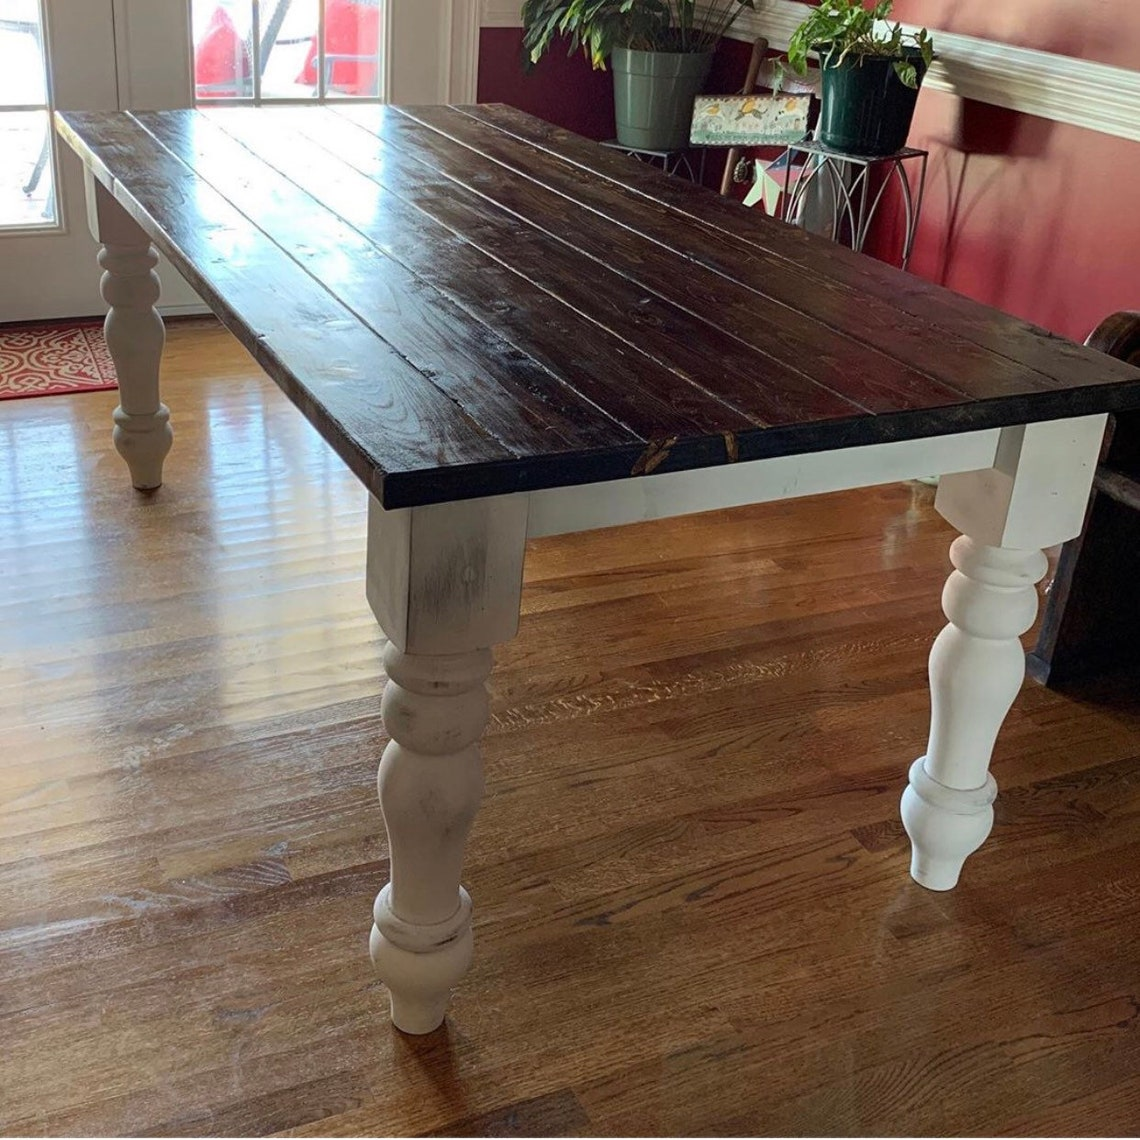 "Hardwood Curvy Chunky Farmhouse Dining Table Legs - 5"" x 5"" x 29"" - Set of 4 - Unfinished Wood Legs - Made in NC"